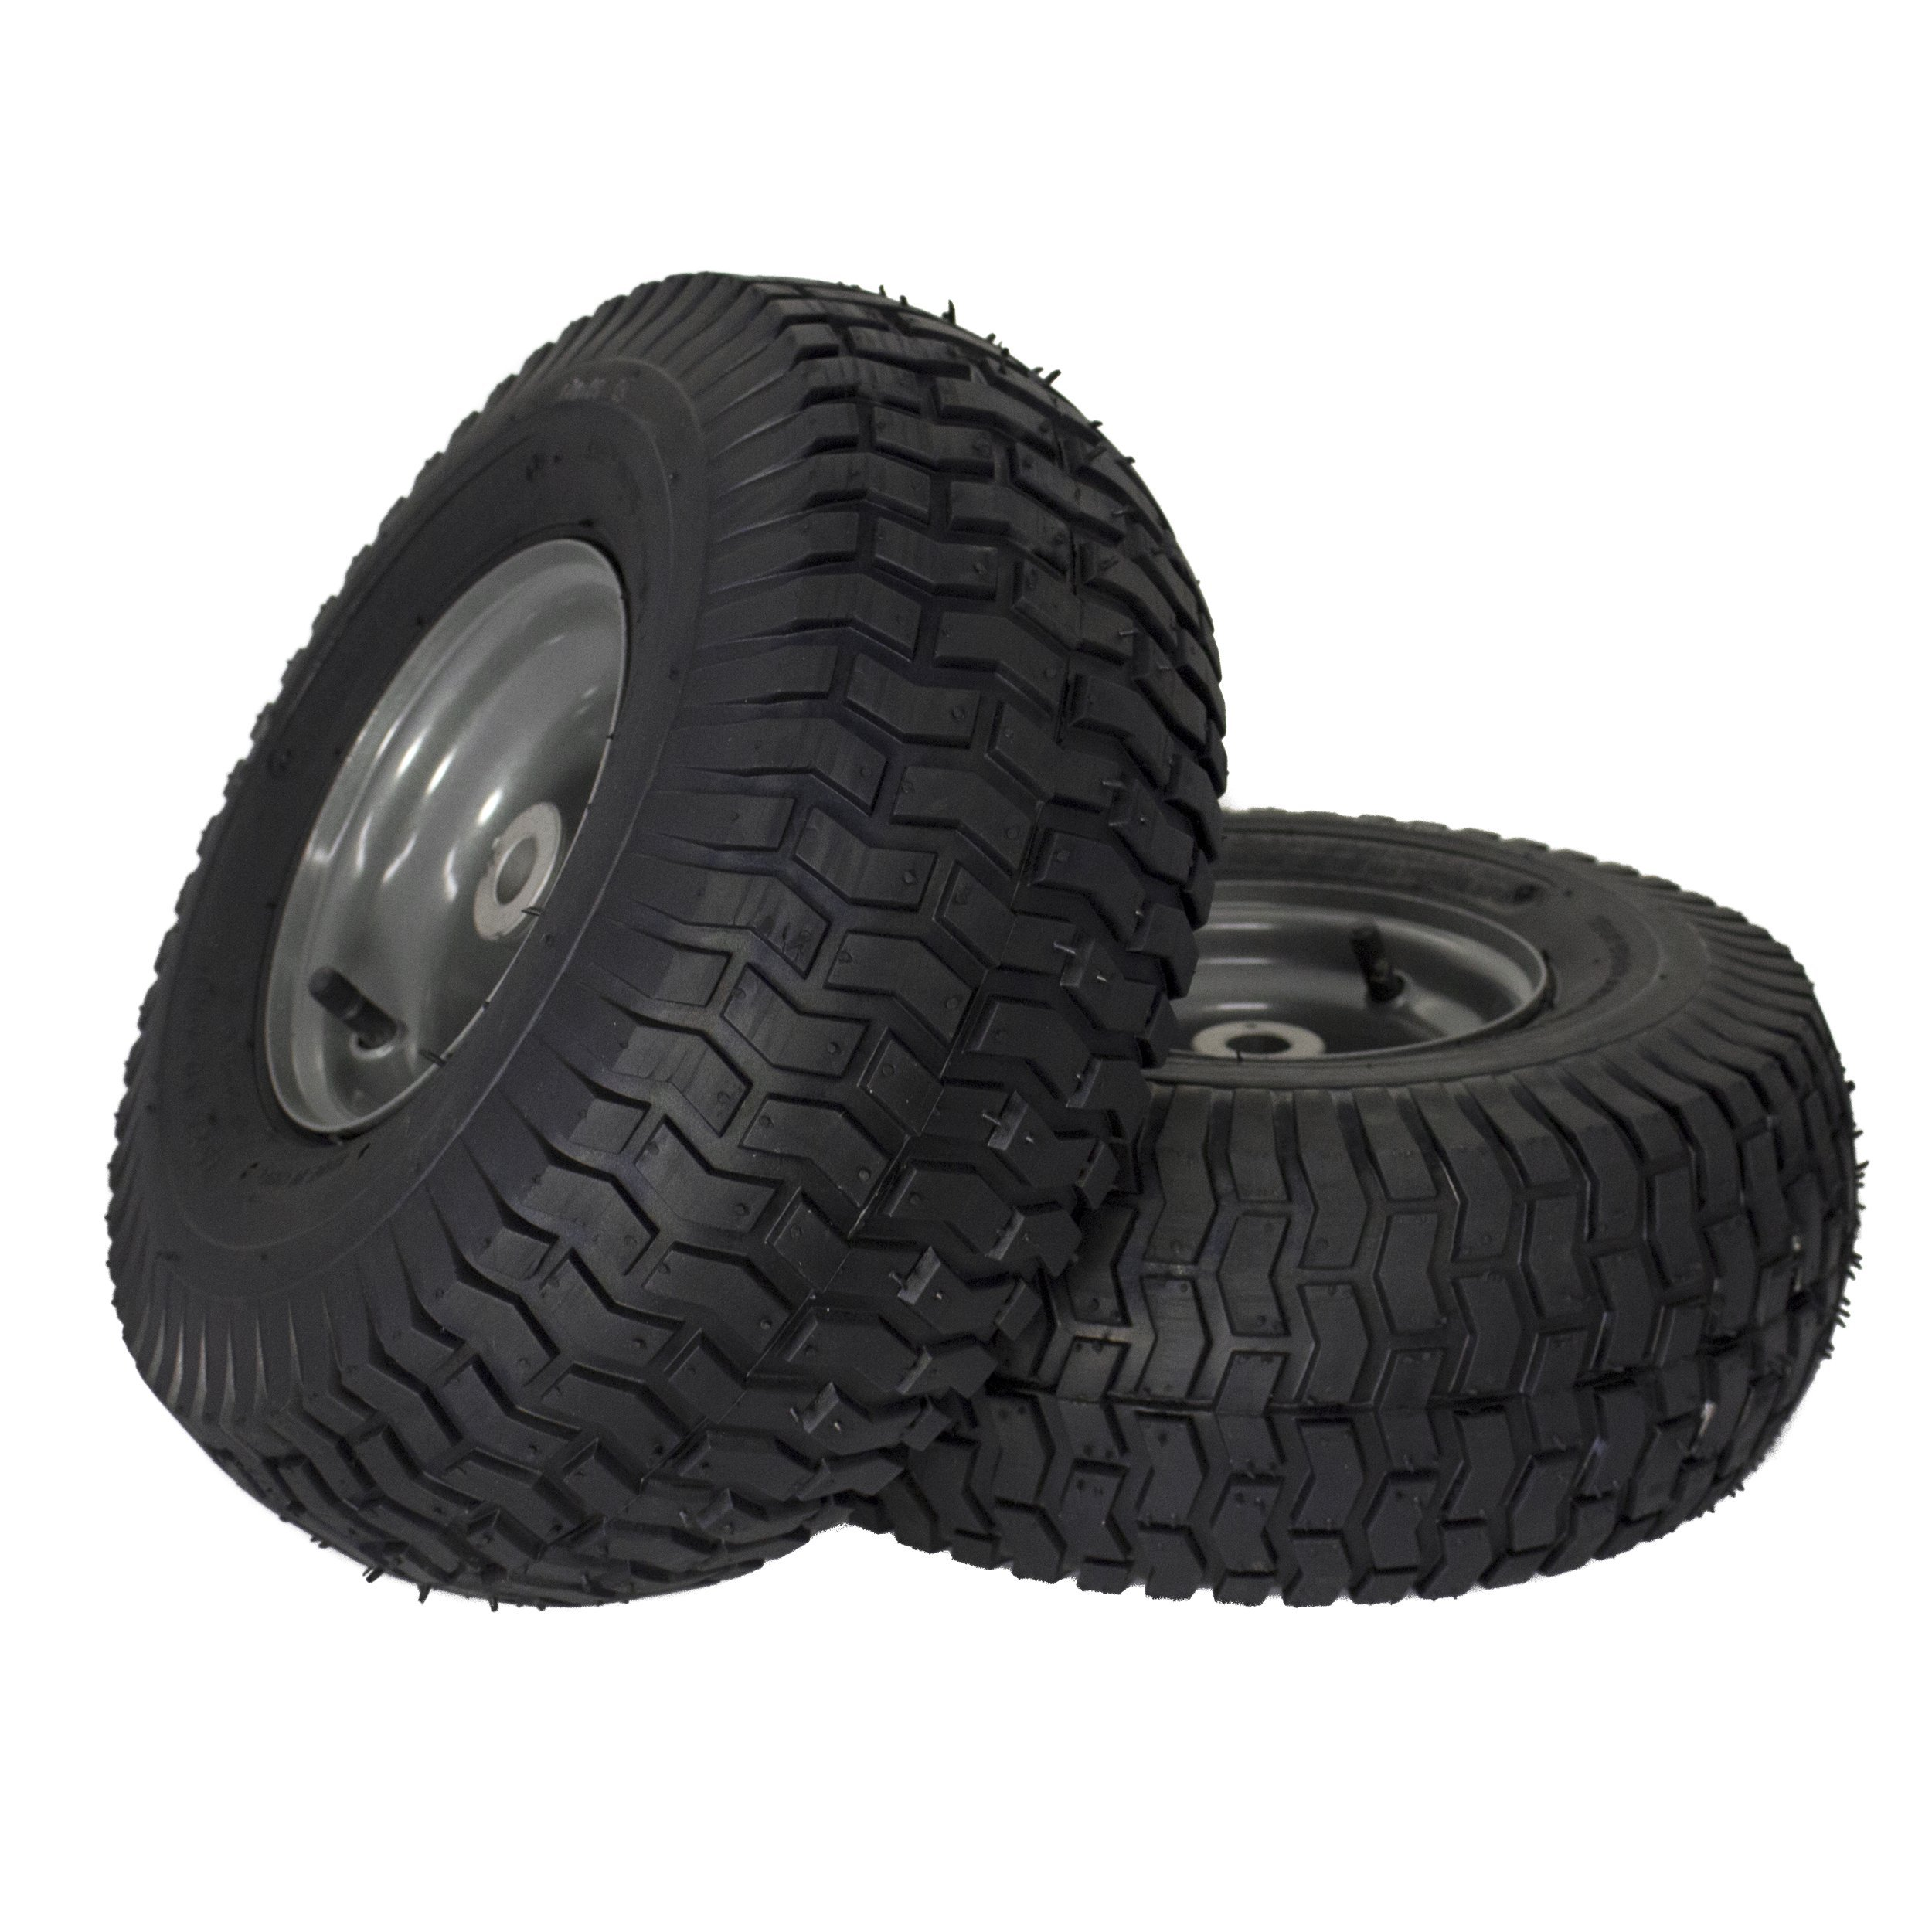 MARASTAR 21446-2PK 15x6.00-6'' Front Tire Assembly Replacement for Craftsman Riding Mowers